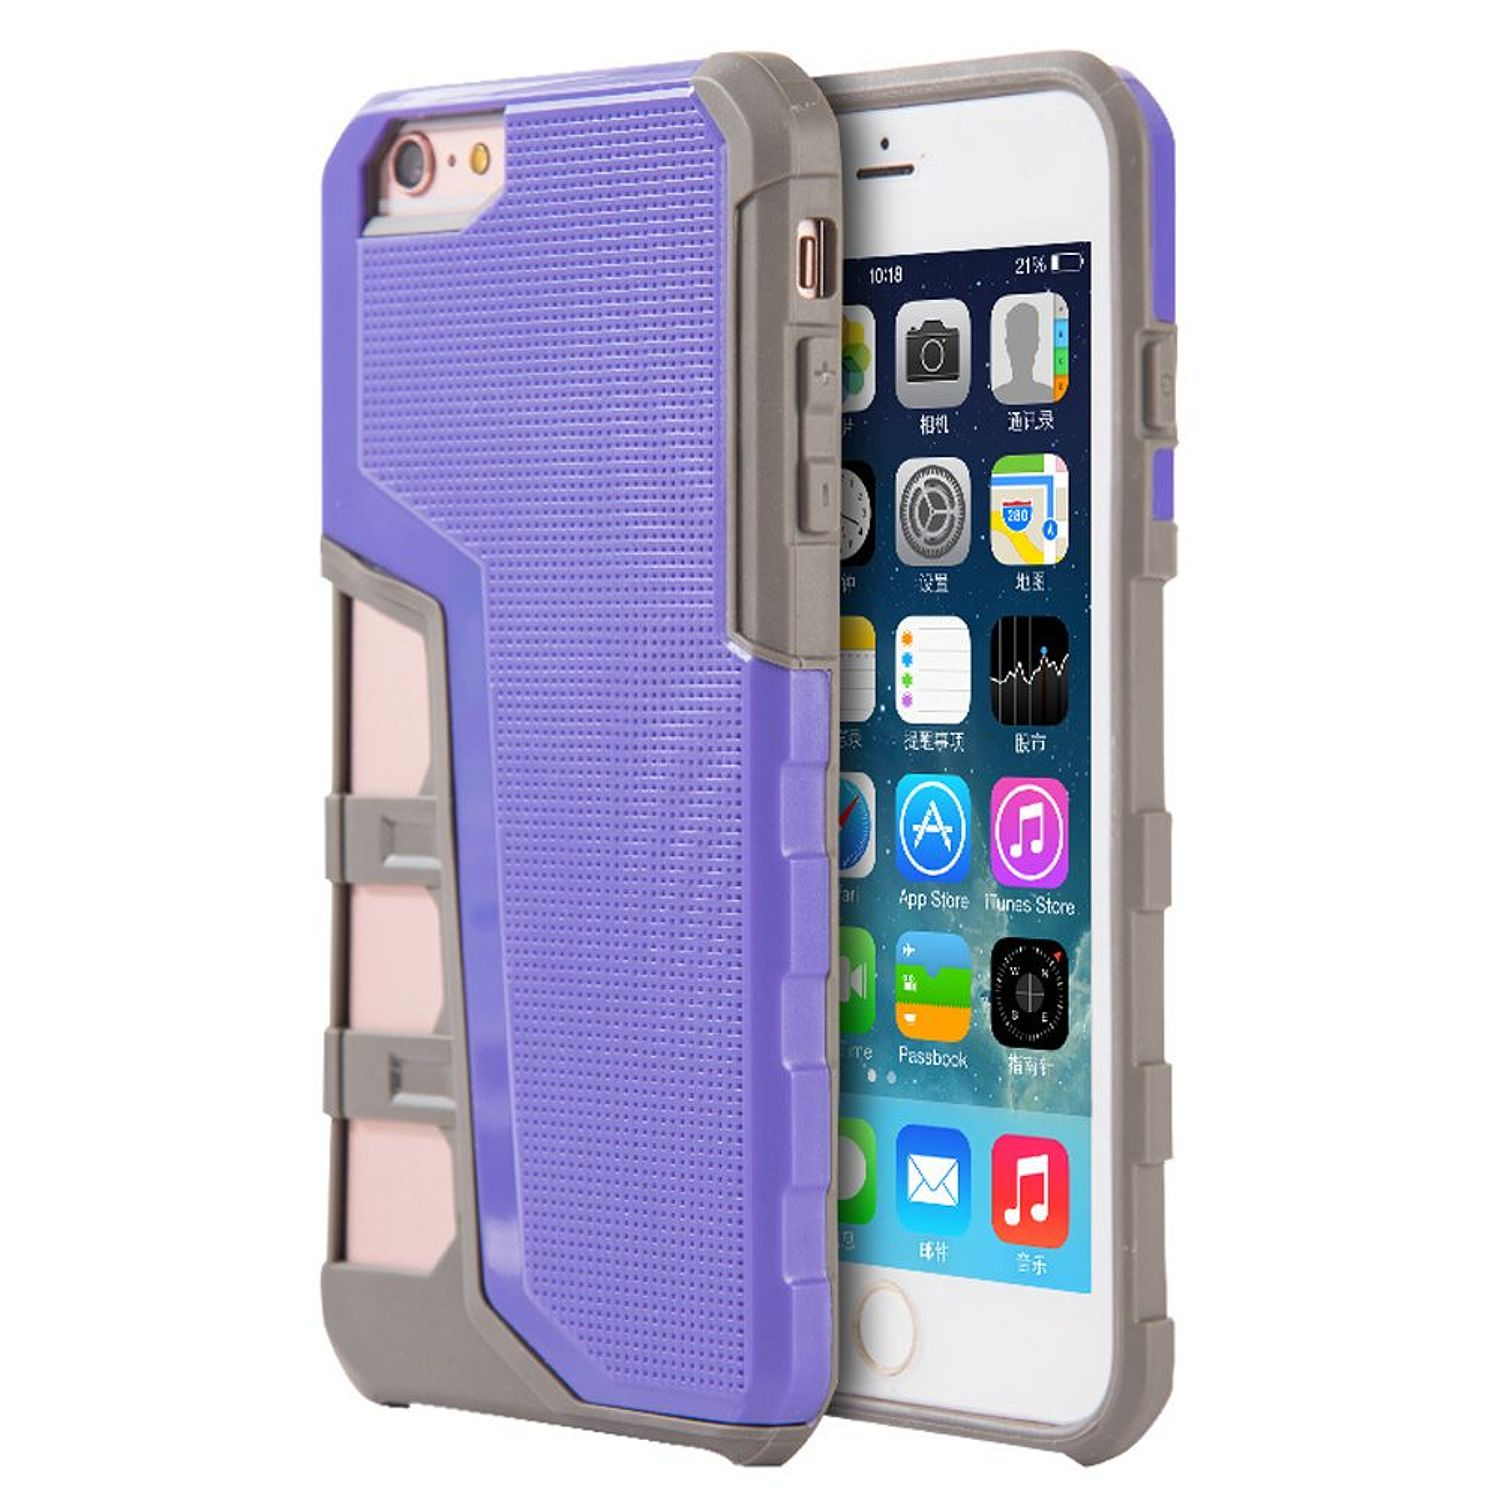 Insten Hard Hybrid TPU Case For Apple iPhone 6s Plus / 6 Plus - Purple/Gray